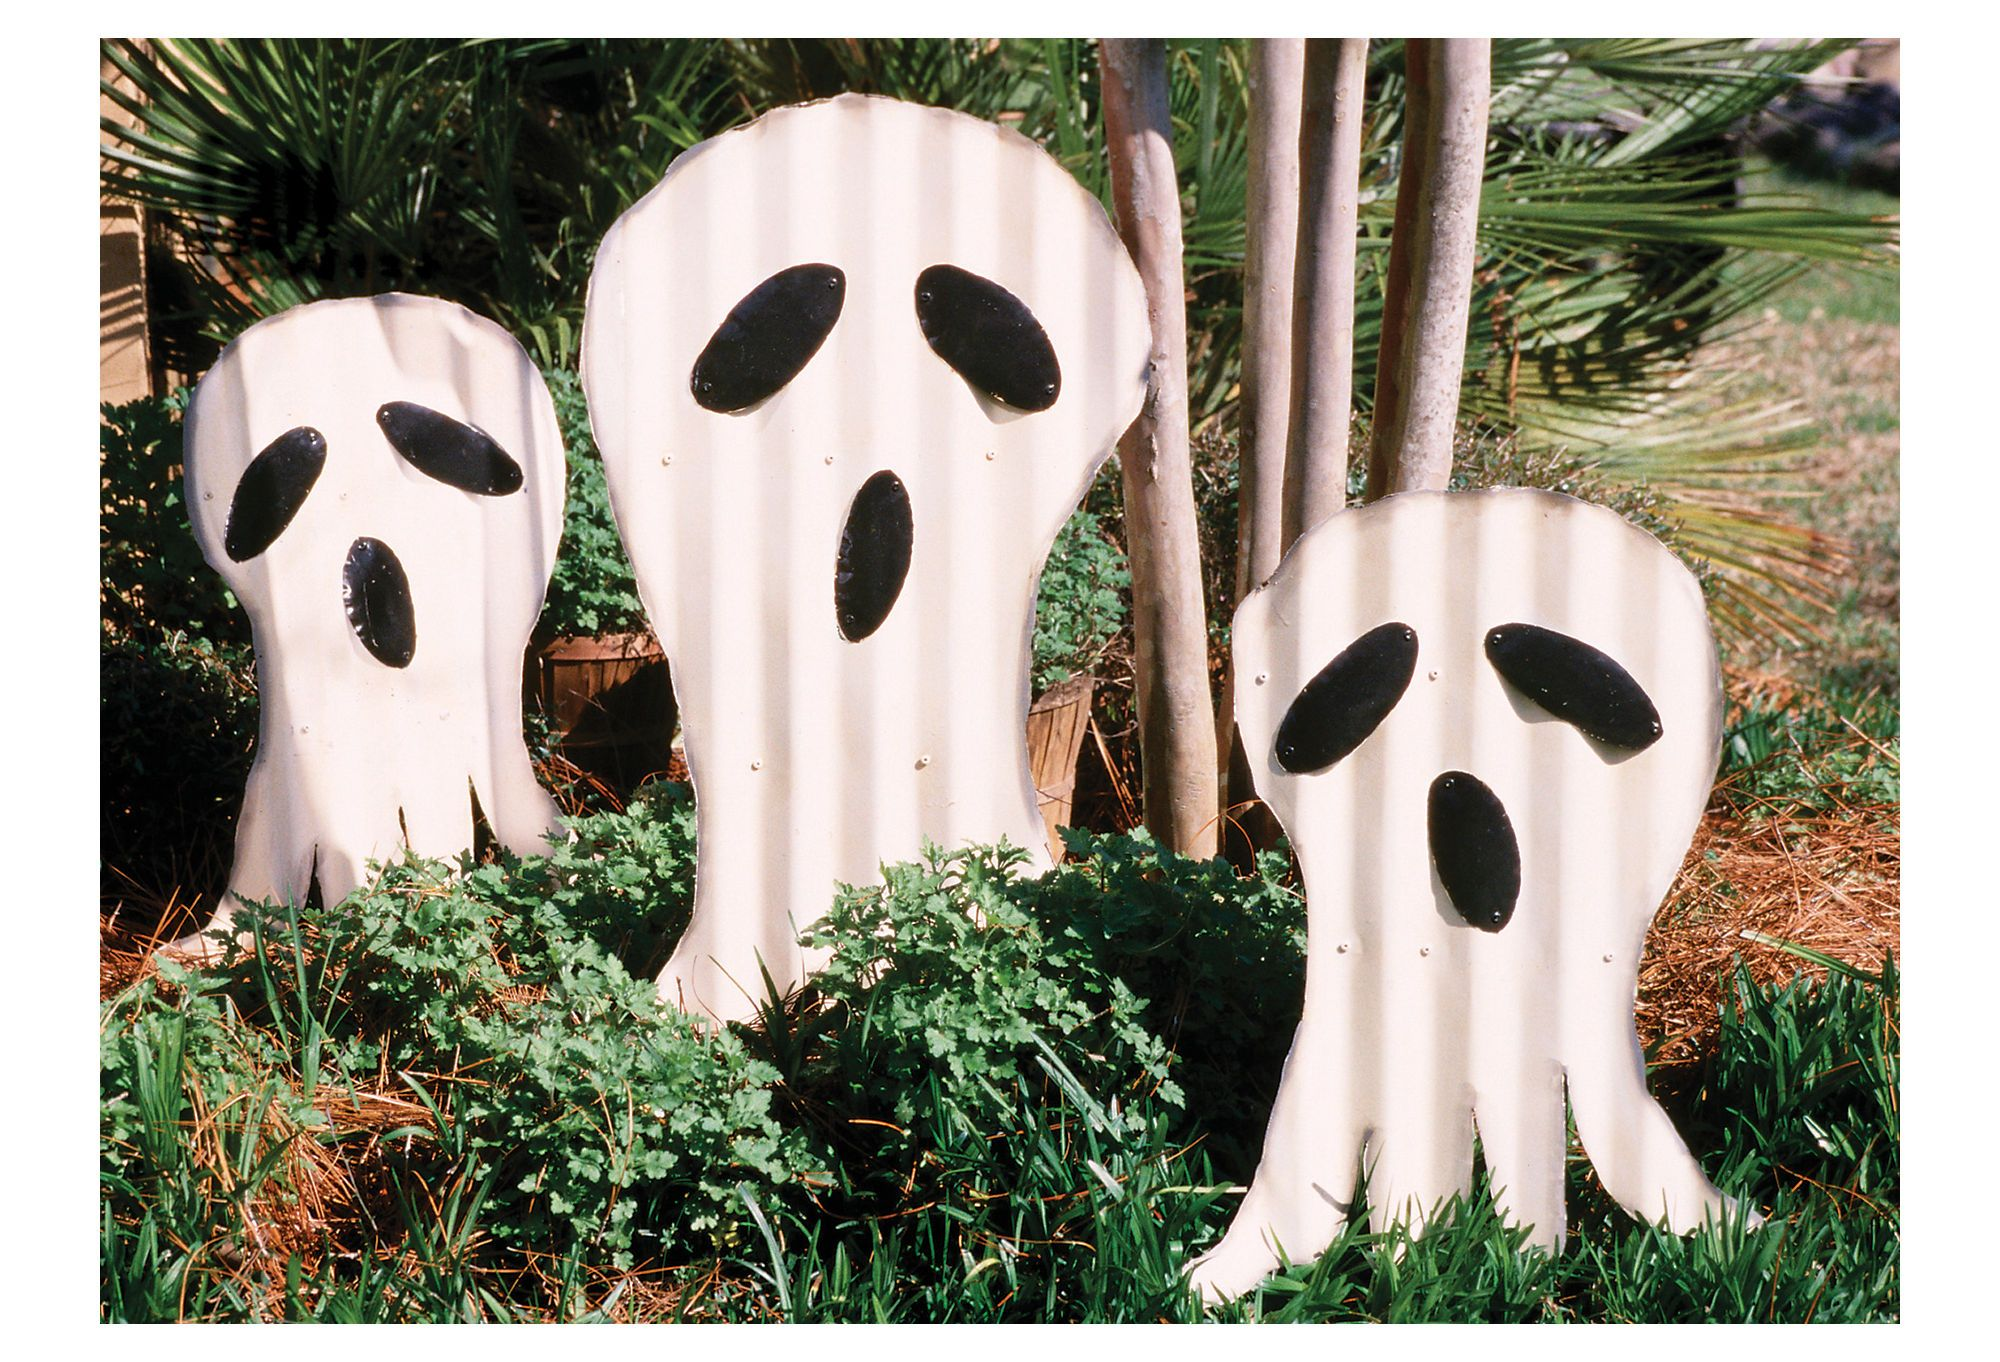 painted metal ghosts yard art halloween